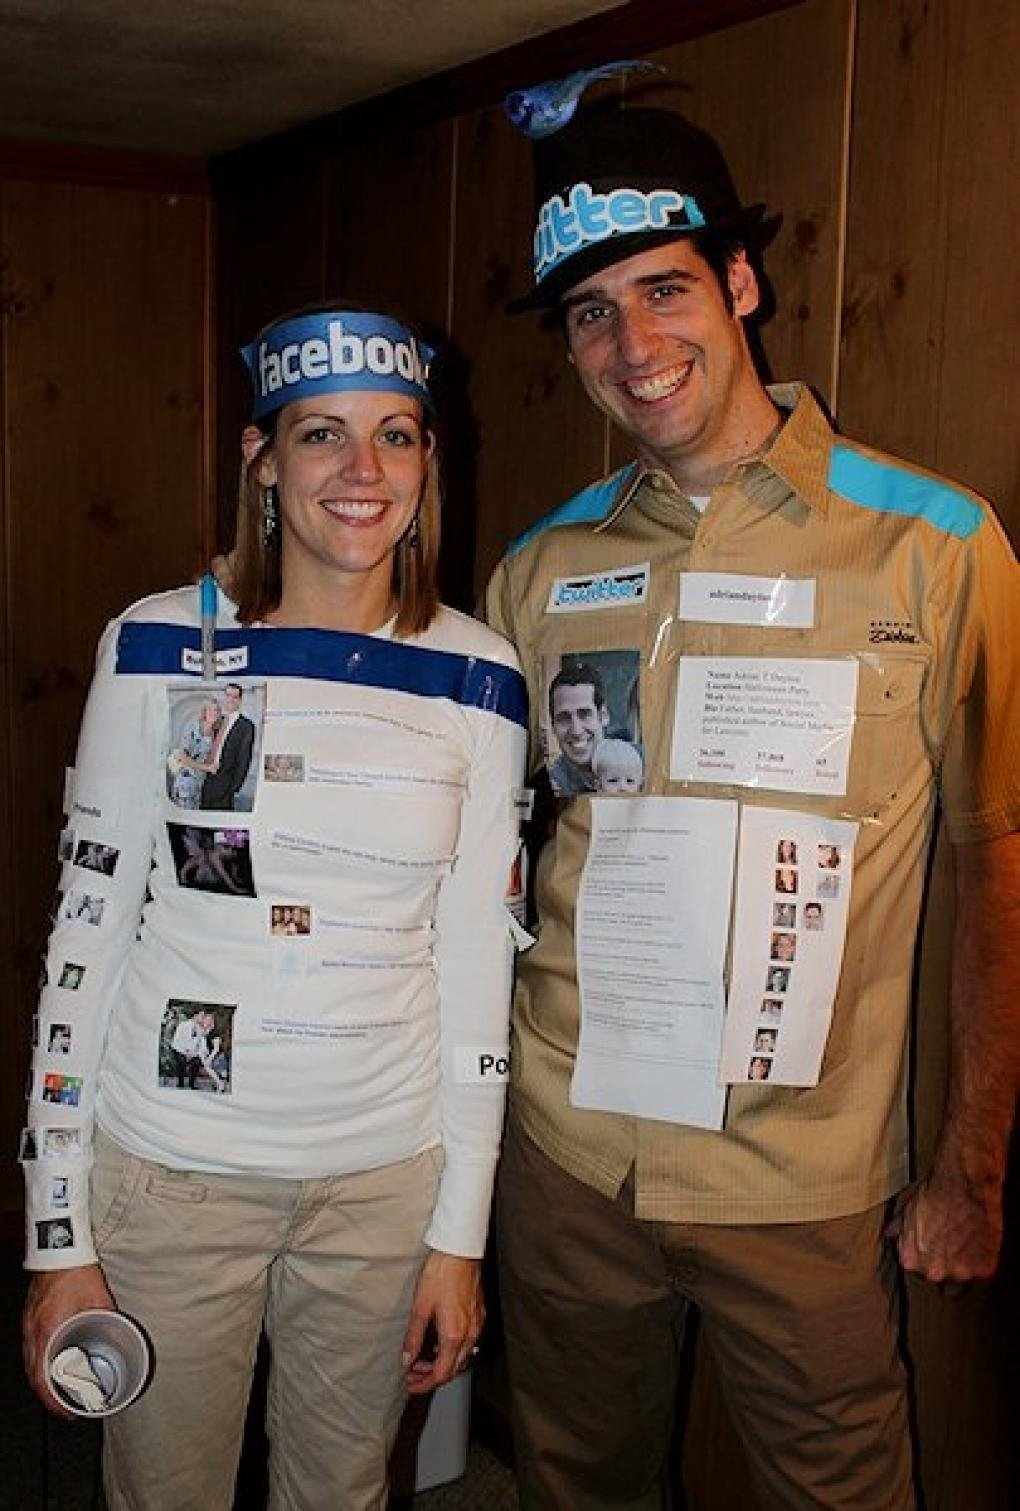 halloween 2014 : facebook et twitter: on like ! - duo | meltystyle